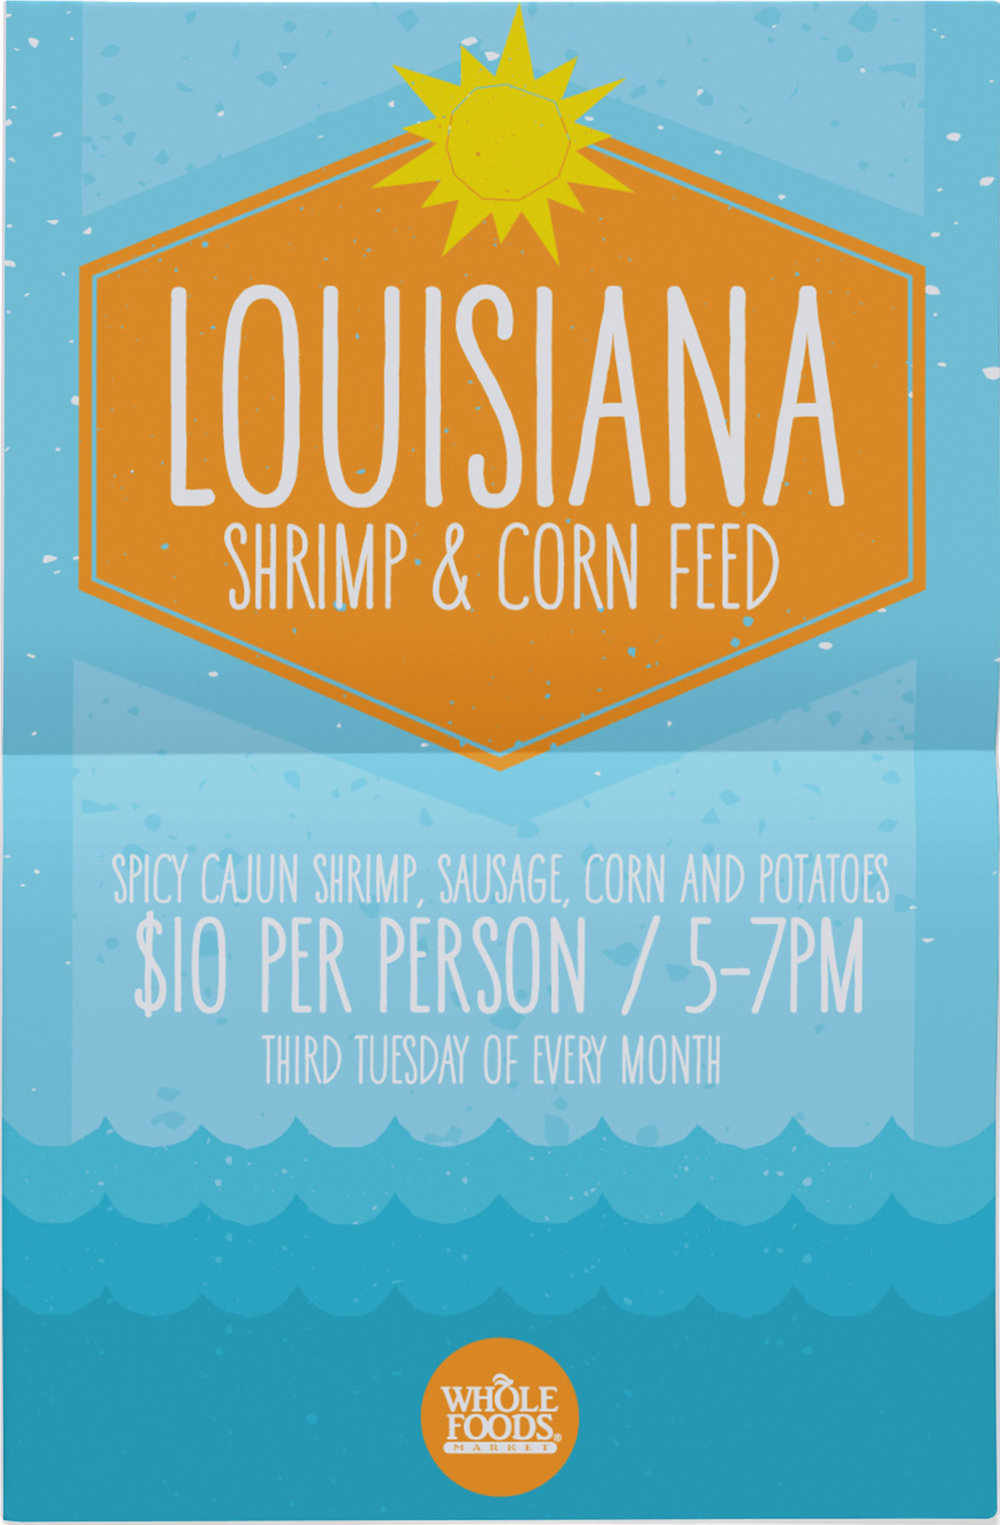 louisiana shrimp & corn feed  Market signage to call attention to an in-store event. I also created web graphics for the event that were featured on the store's social media accounts